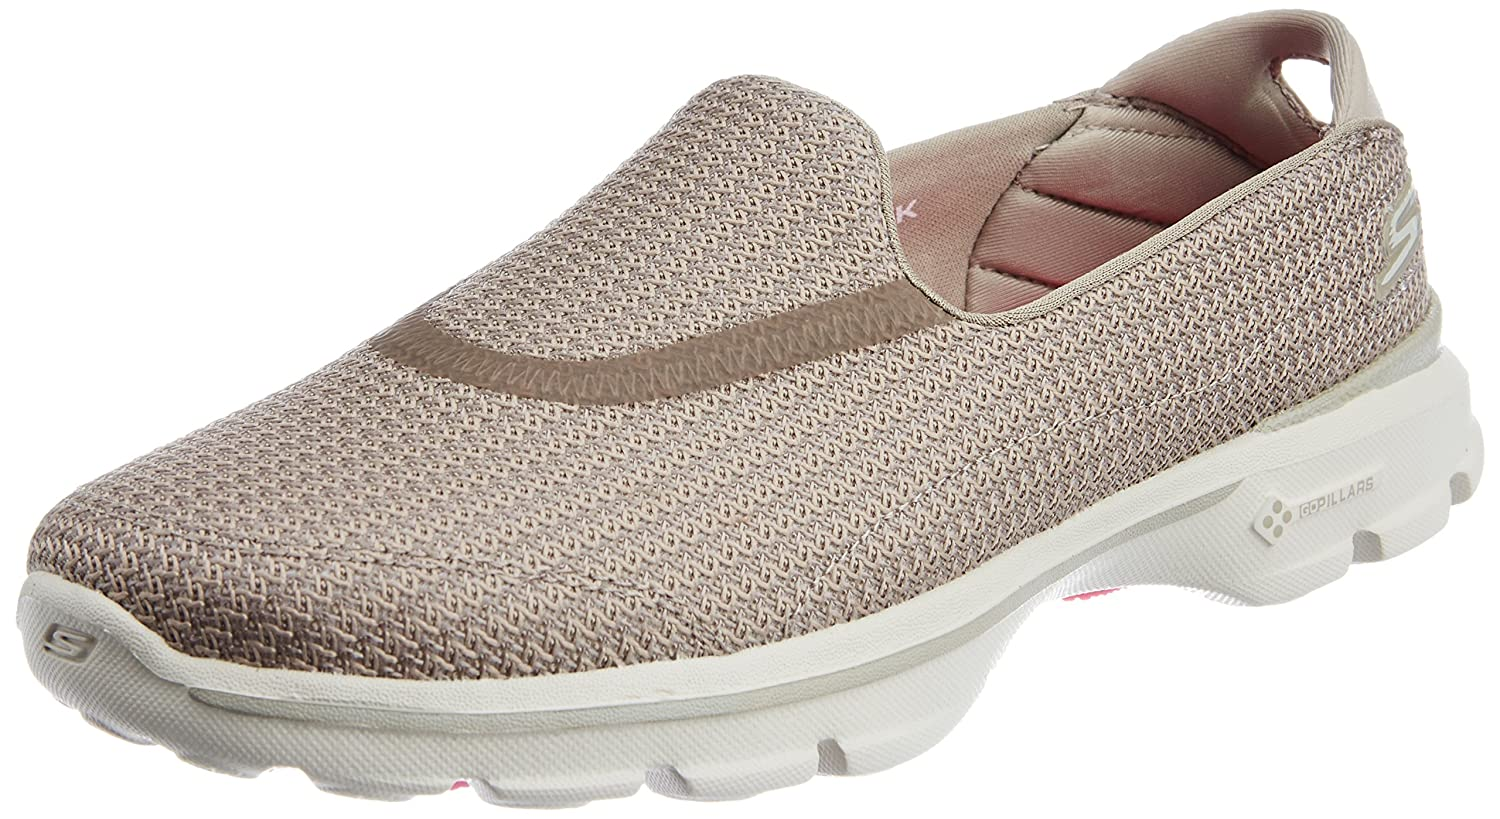 14f959100dcb Skechers Women s Go Walk 3 Stone Mesh Walking Shoes - 3 UK India (36 EU) (6  US)  Amazon.in  Shoes   Handbags